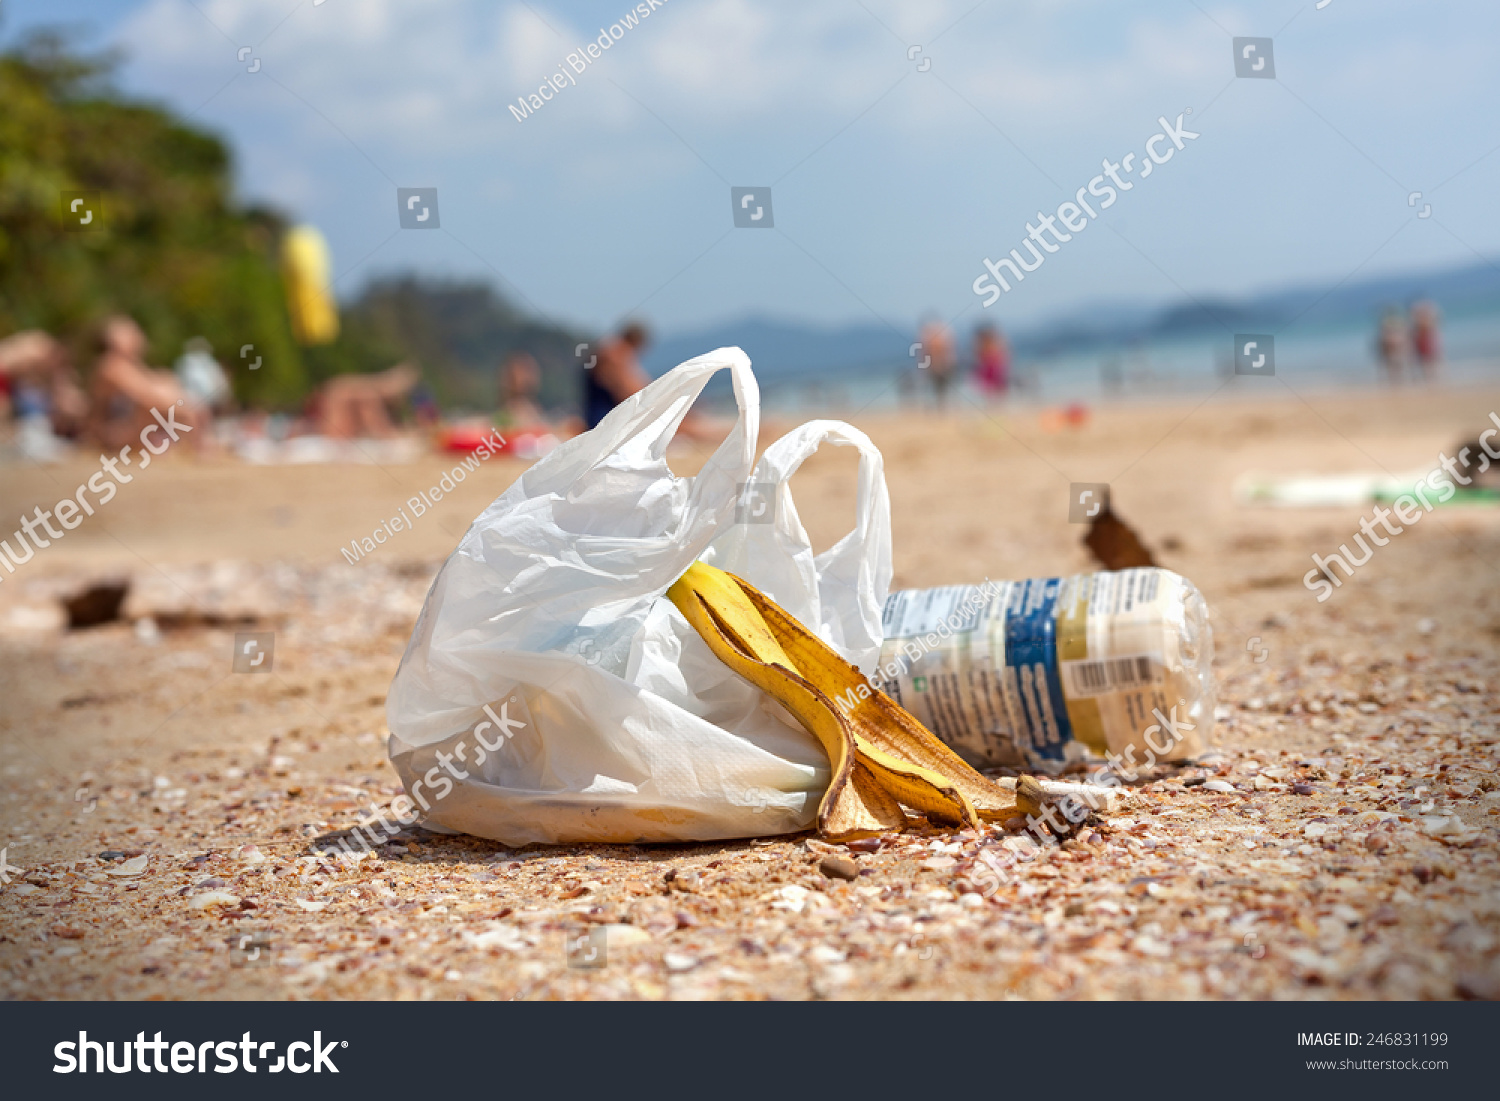 plastic bag pollution essay